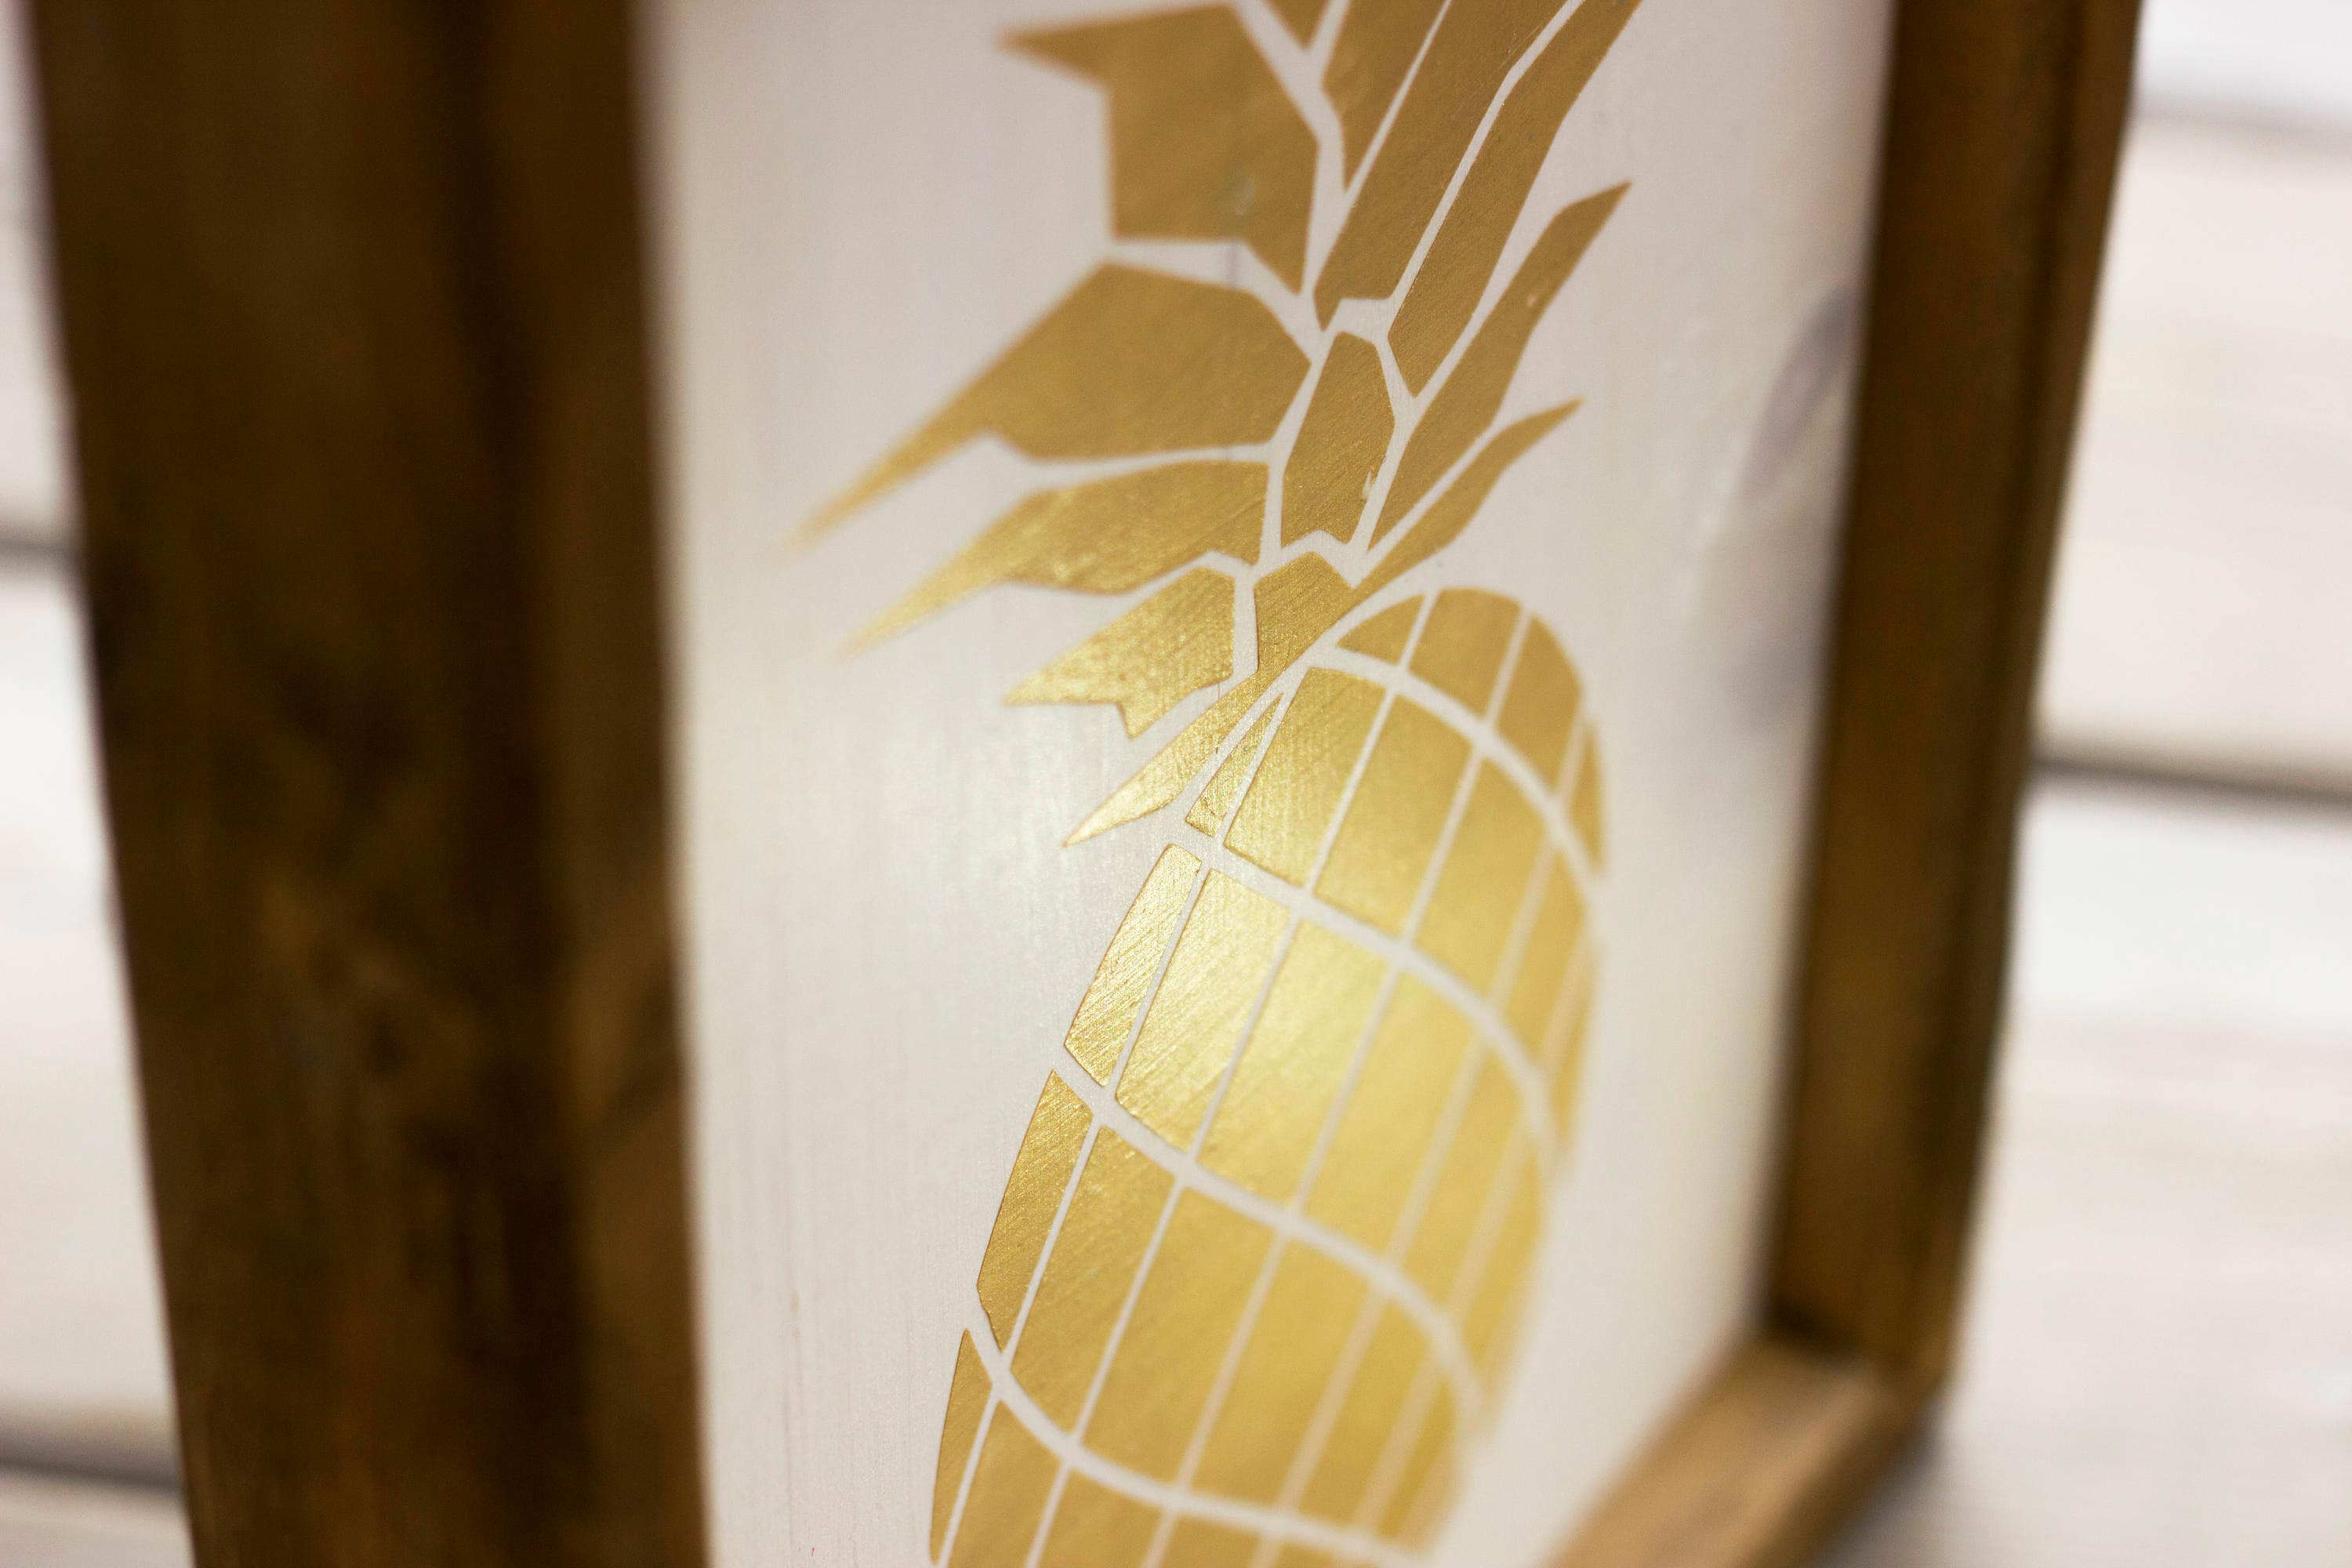 Gold Pineapple, Pineapple Wall Art, Pineapple Decor, Gold Pineapple ...